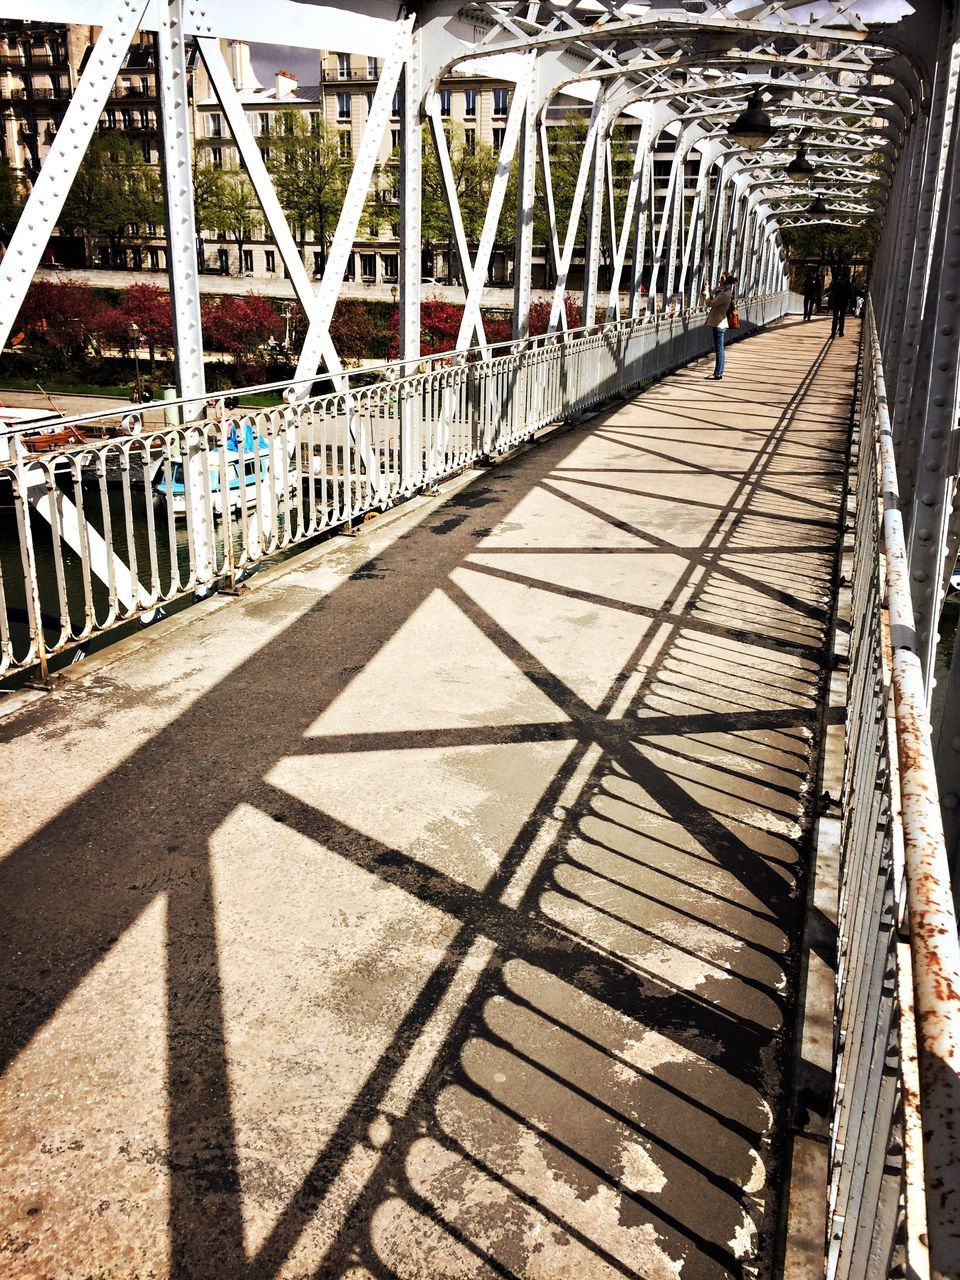 bridge - man made structure, sunlight, connection, architecture, built structure, shadow, railing, day, transportation, footbridge, wood - material, outdoors, no people, girder, city, sky